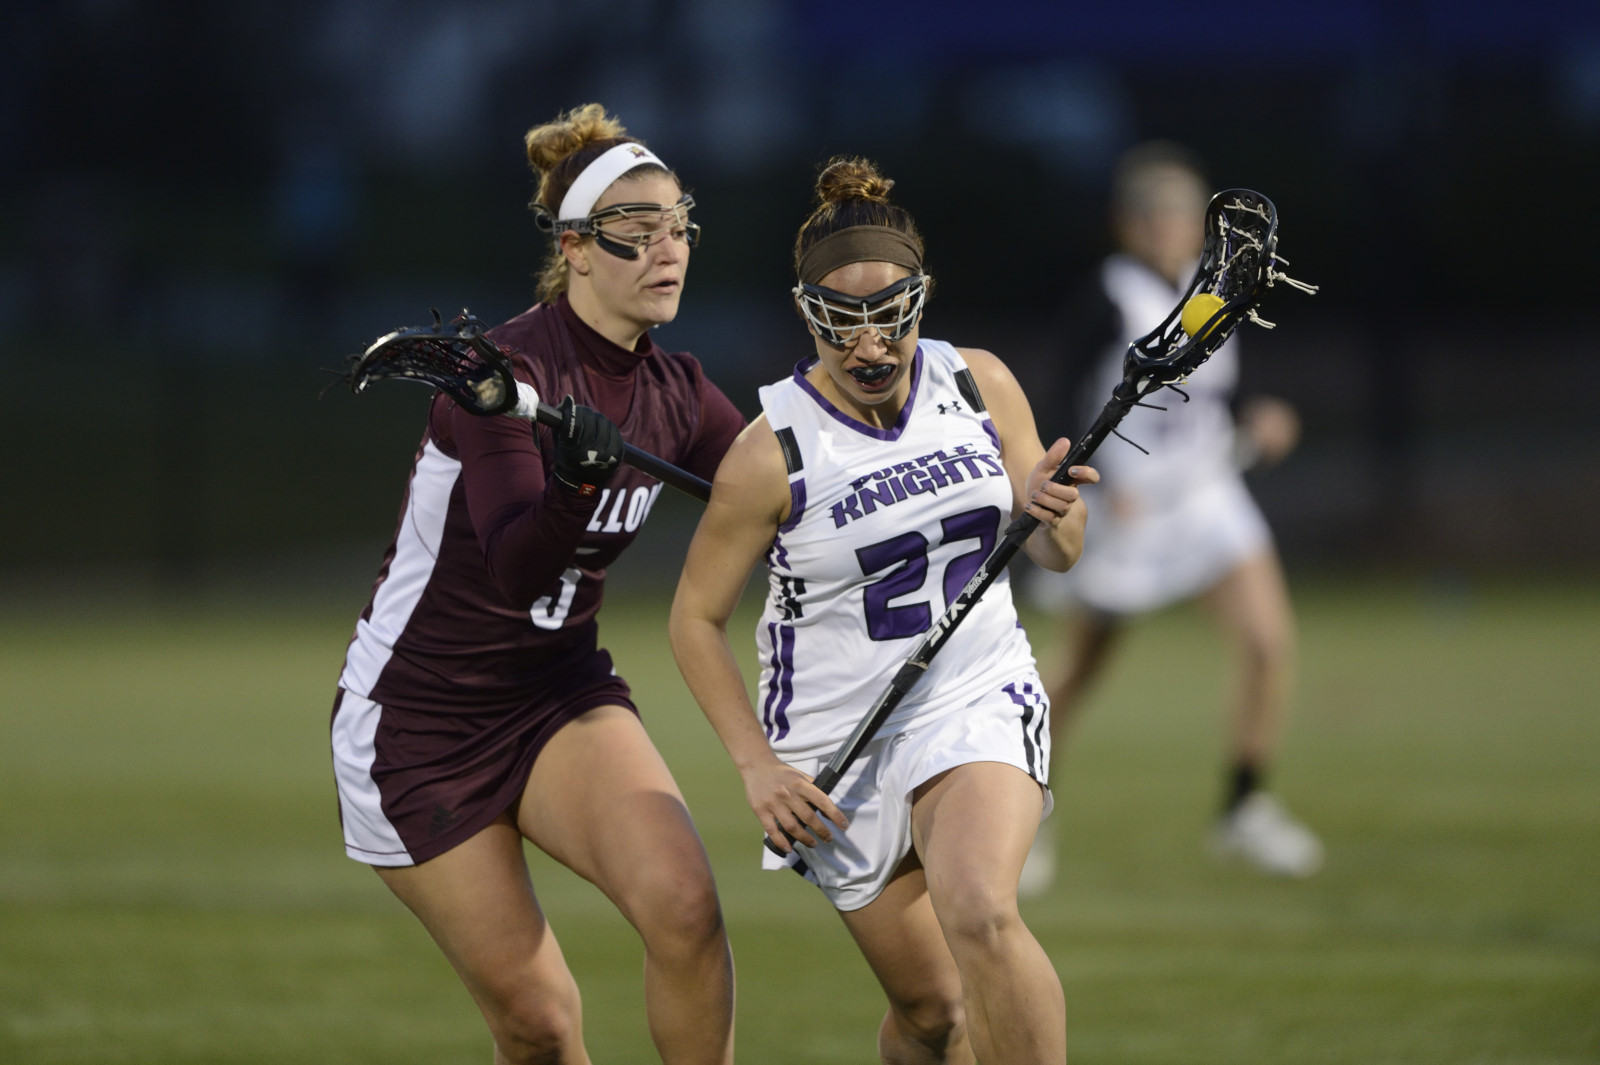 Purple Knights Close Out 2016 Women's Lacrosse Campaign With 9-3 Loss To St. Thomas Aquinas